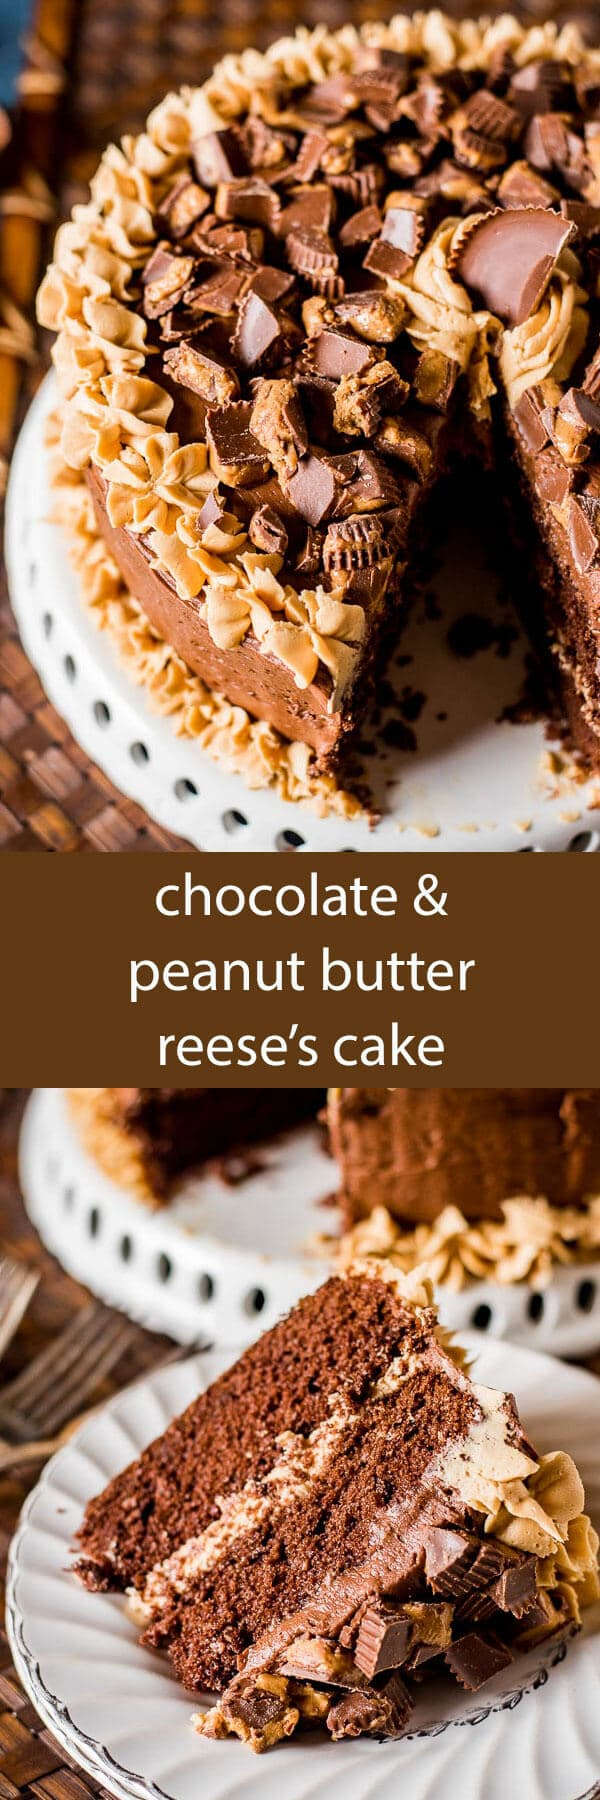 Reeses Cake Homemade Chocolate Cake with Chocolate and Peanut